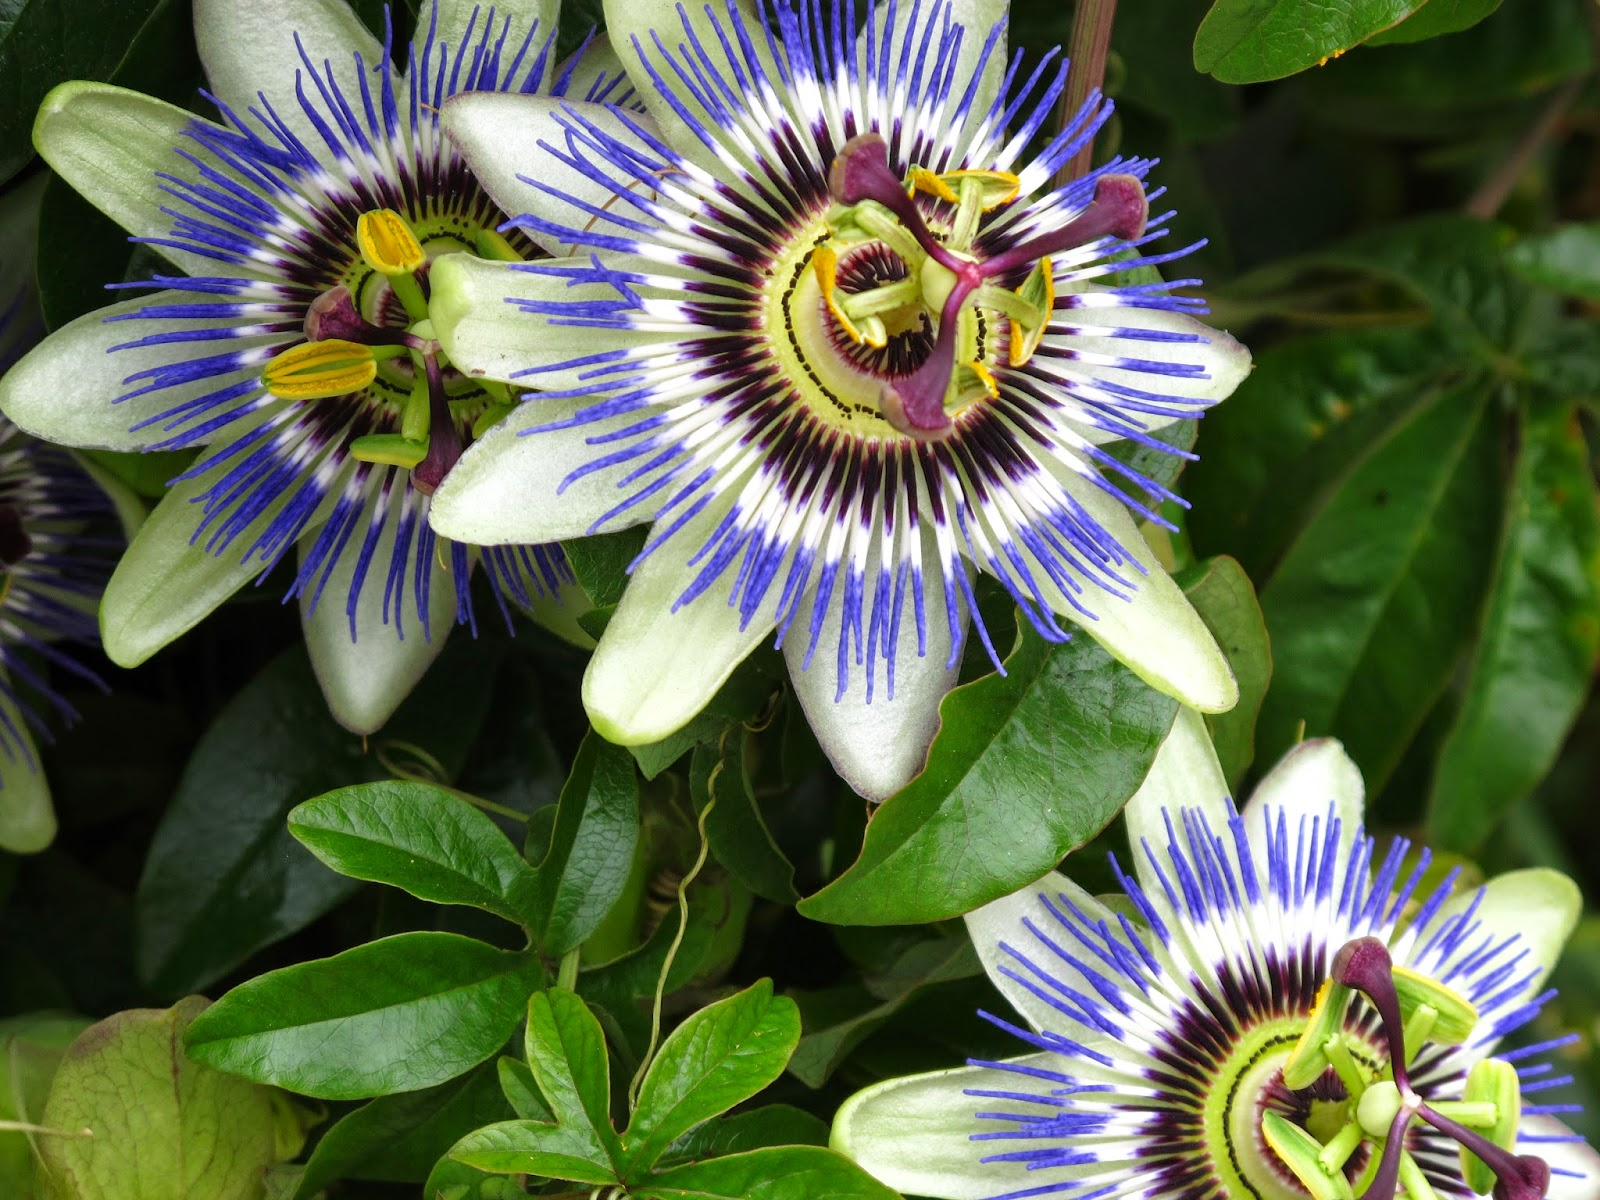 Benefits Of Passion Flower (Passiflora Incarnata) For Health